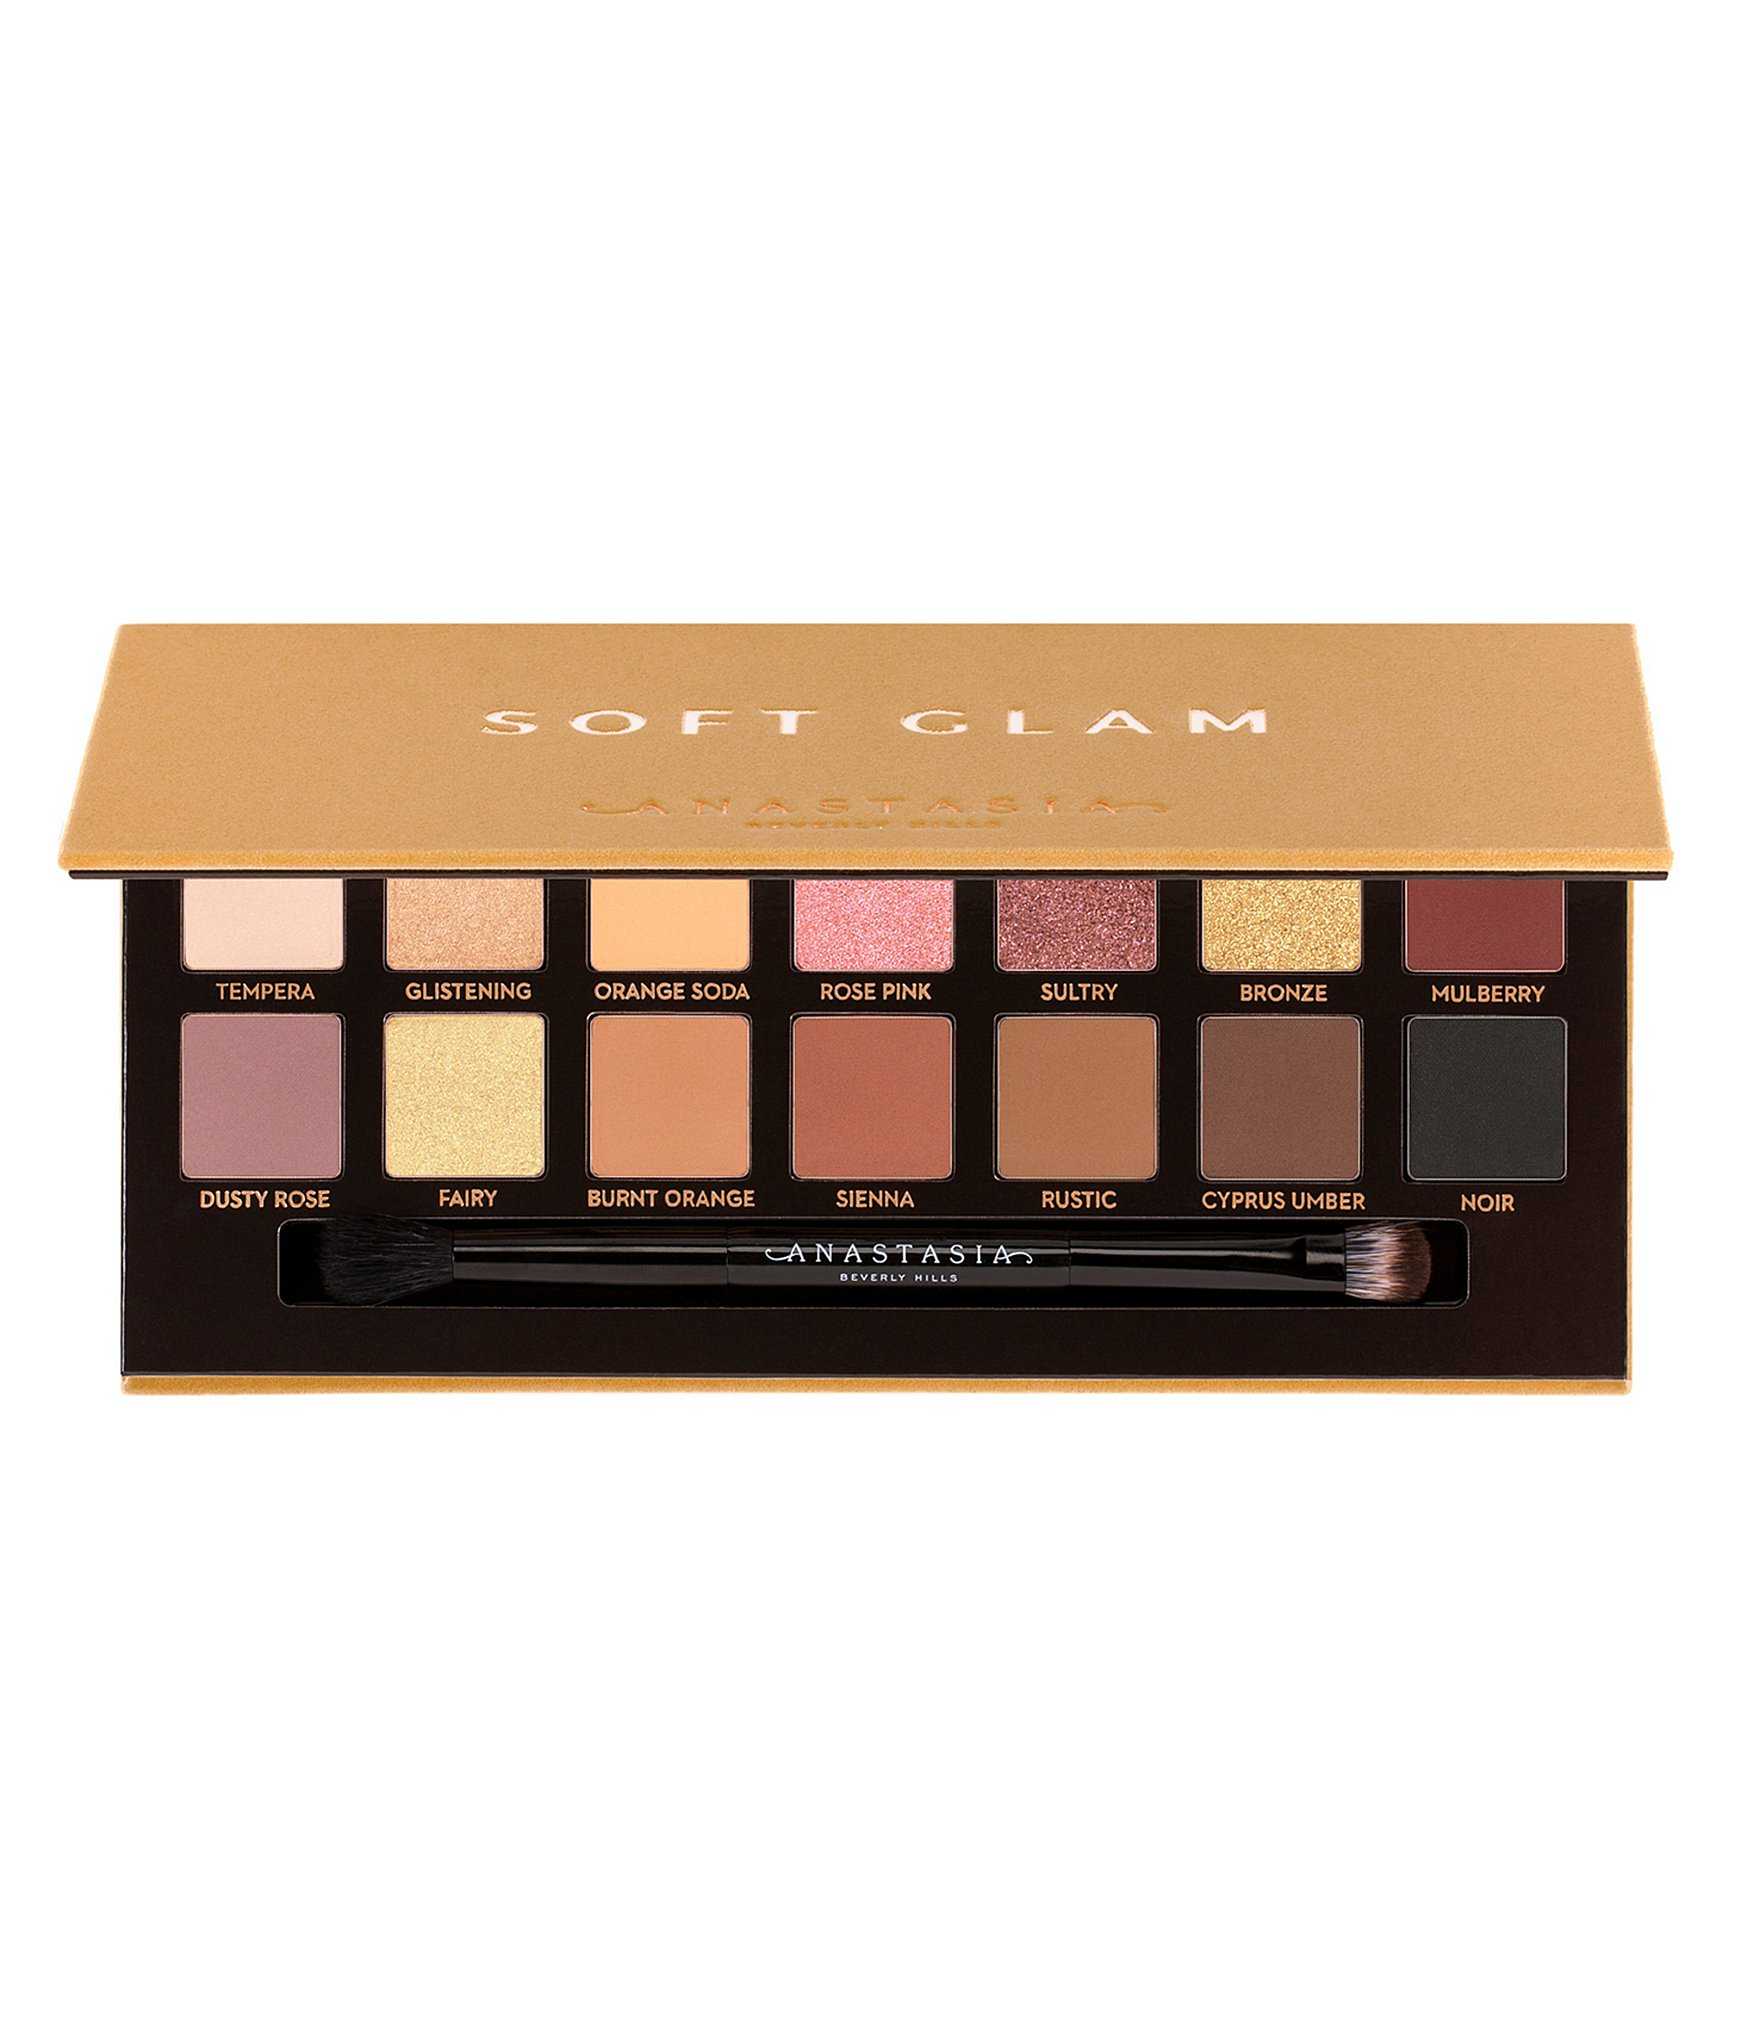 Anastasia Beverly Hills Soft Glam Eyeshadow Palette - Assorted One Size at Urban Outfitters